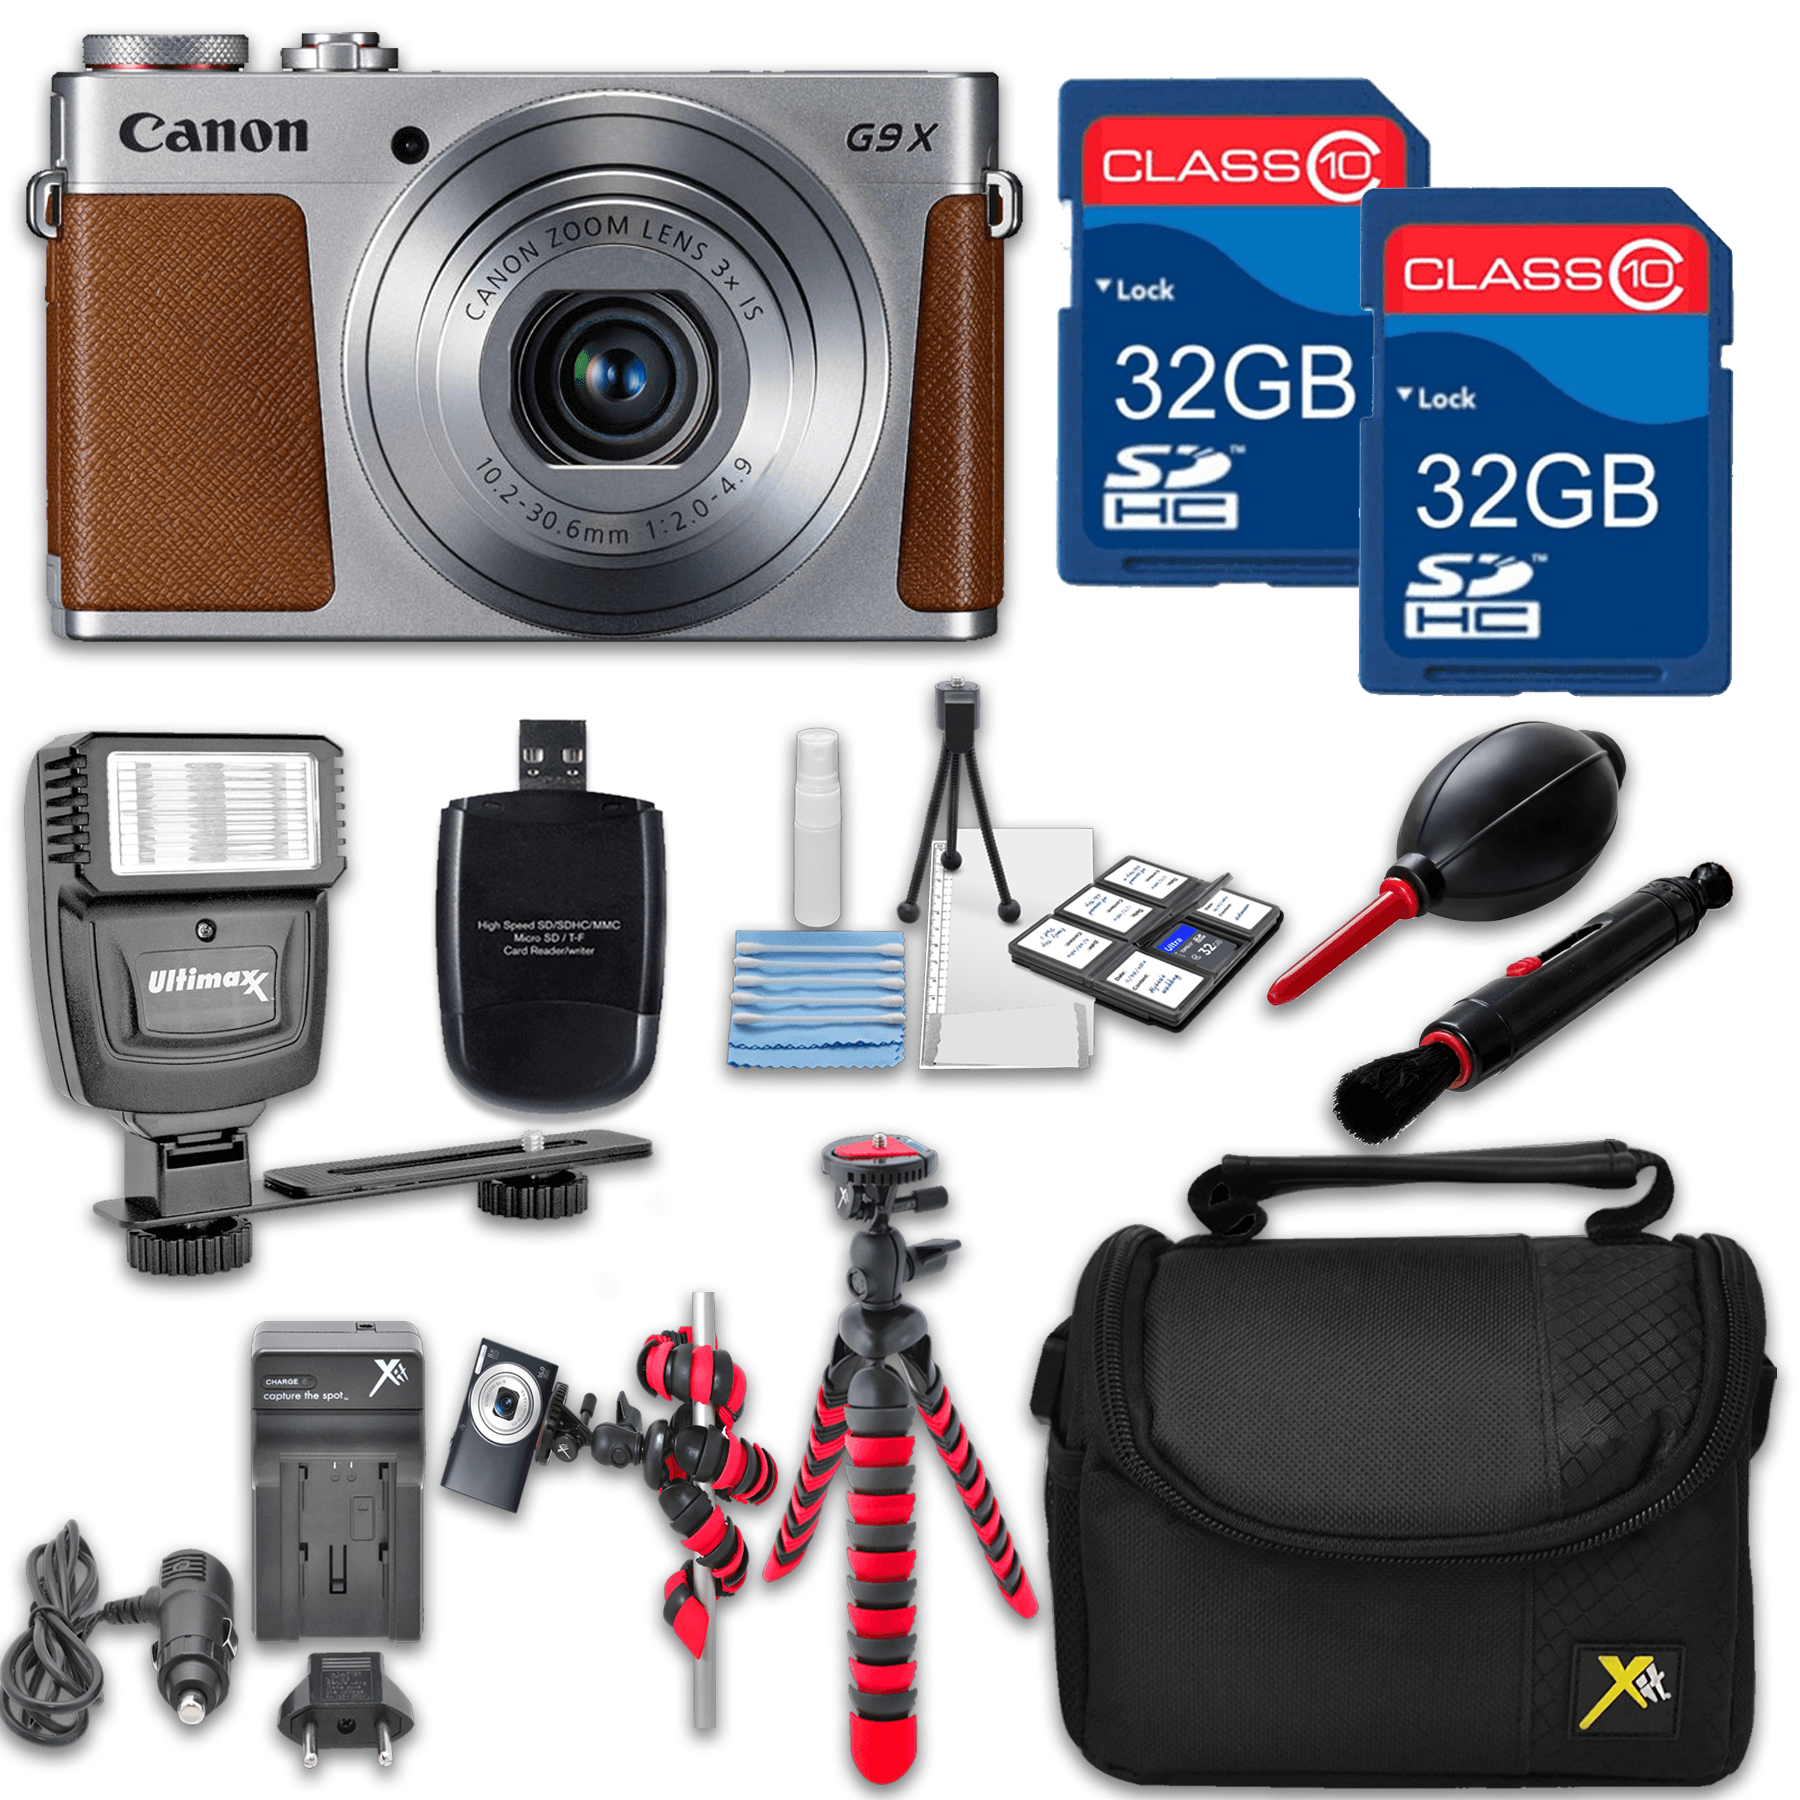 Canon Powershot G9 X (Silver) HS Point and Shoot Digital Camera, W/...